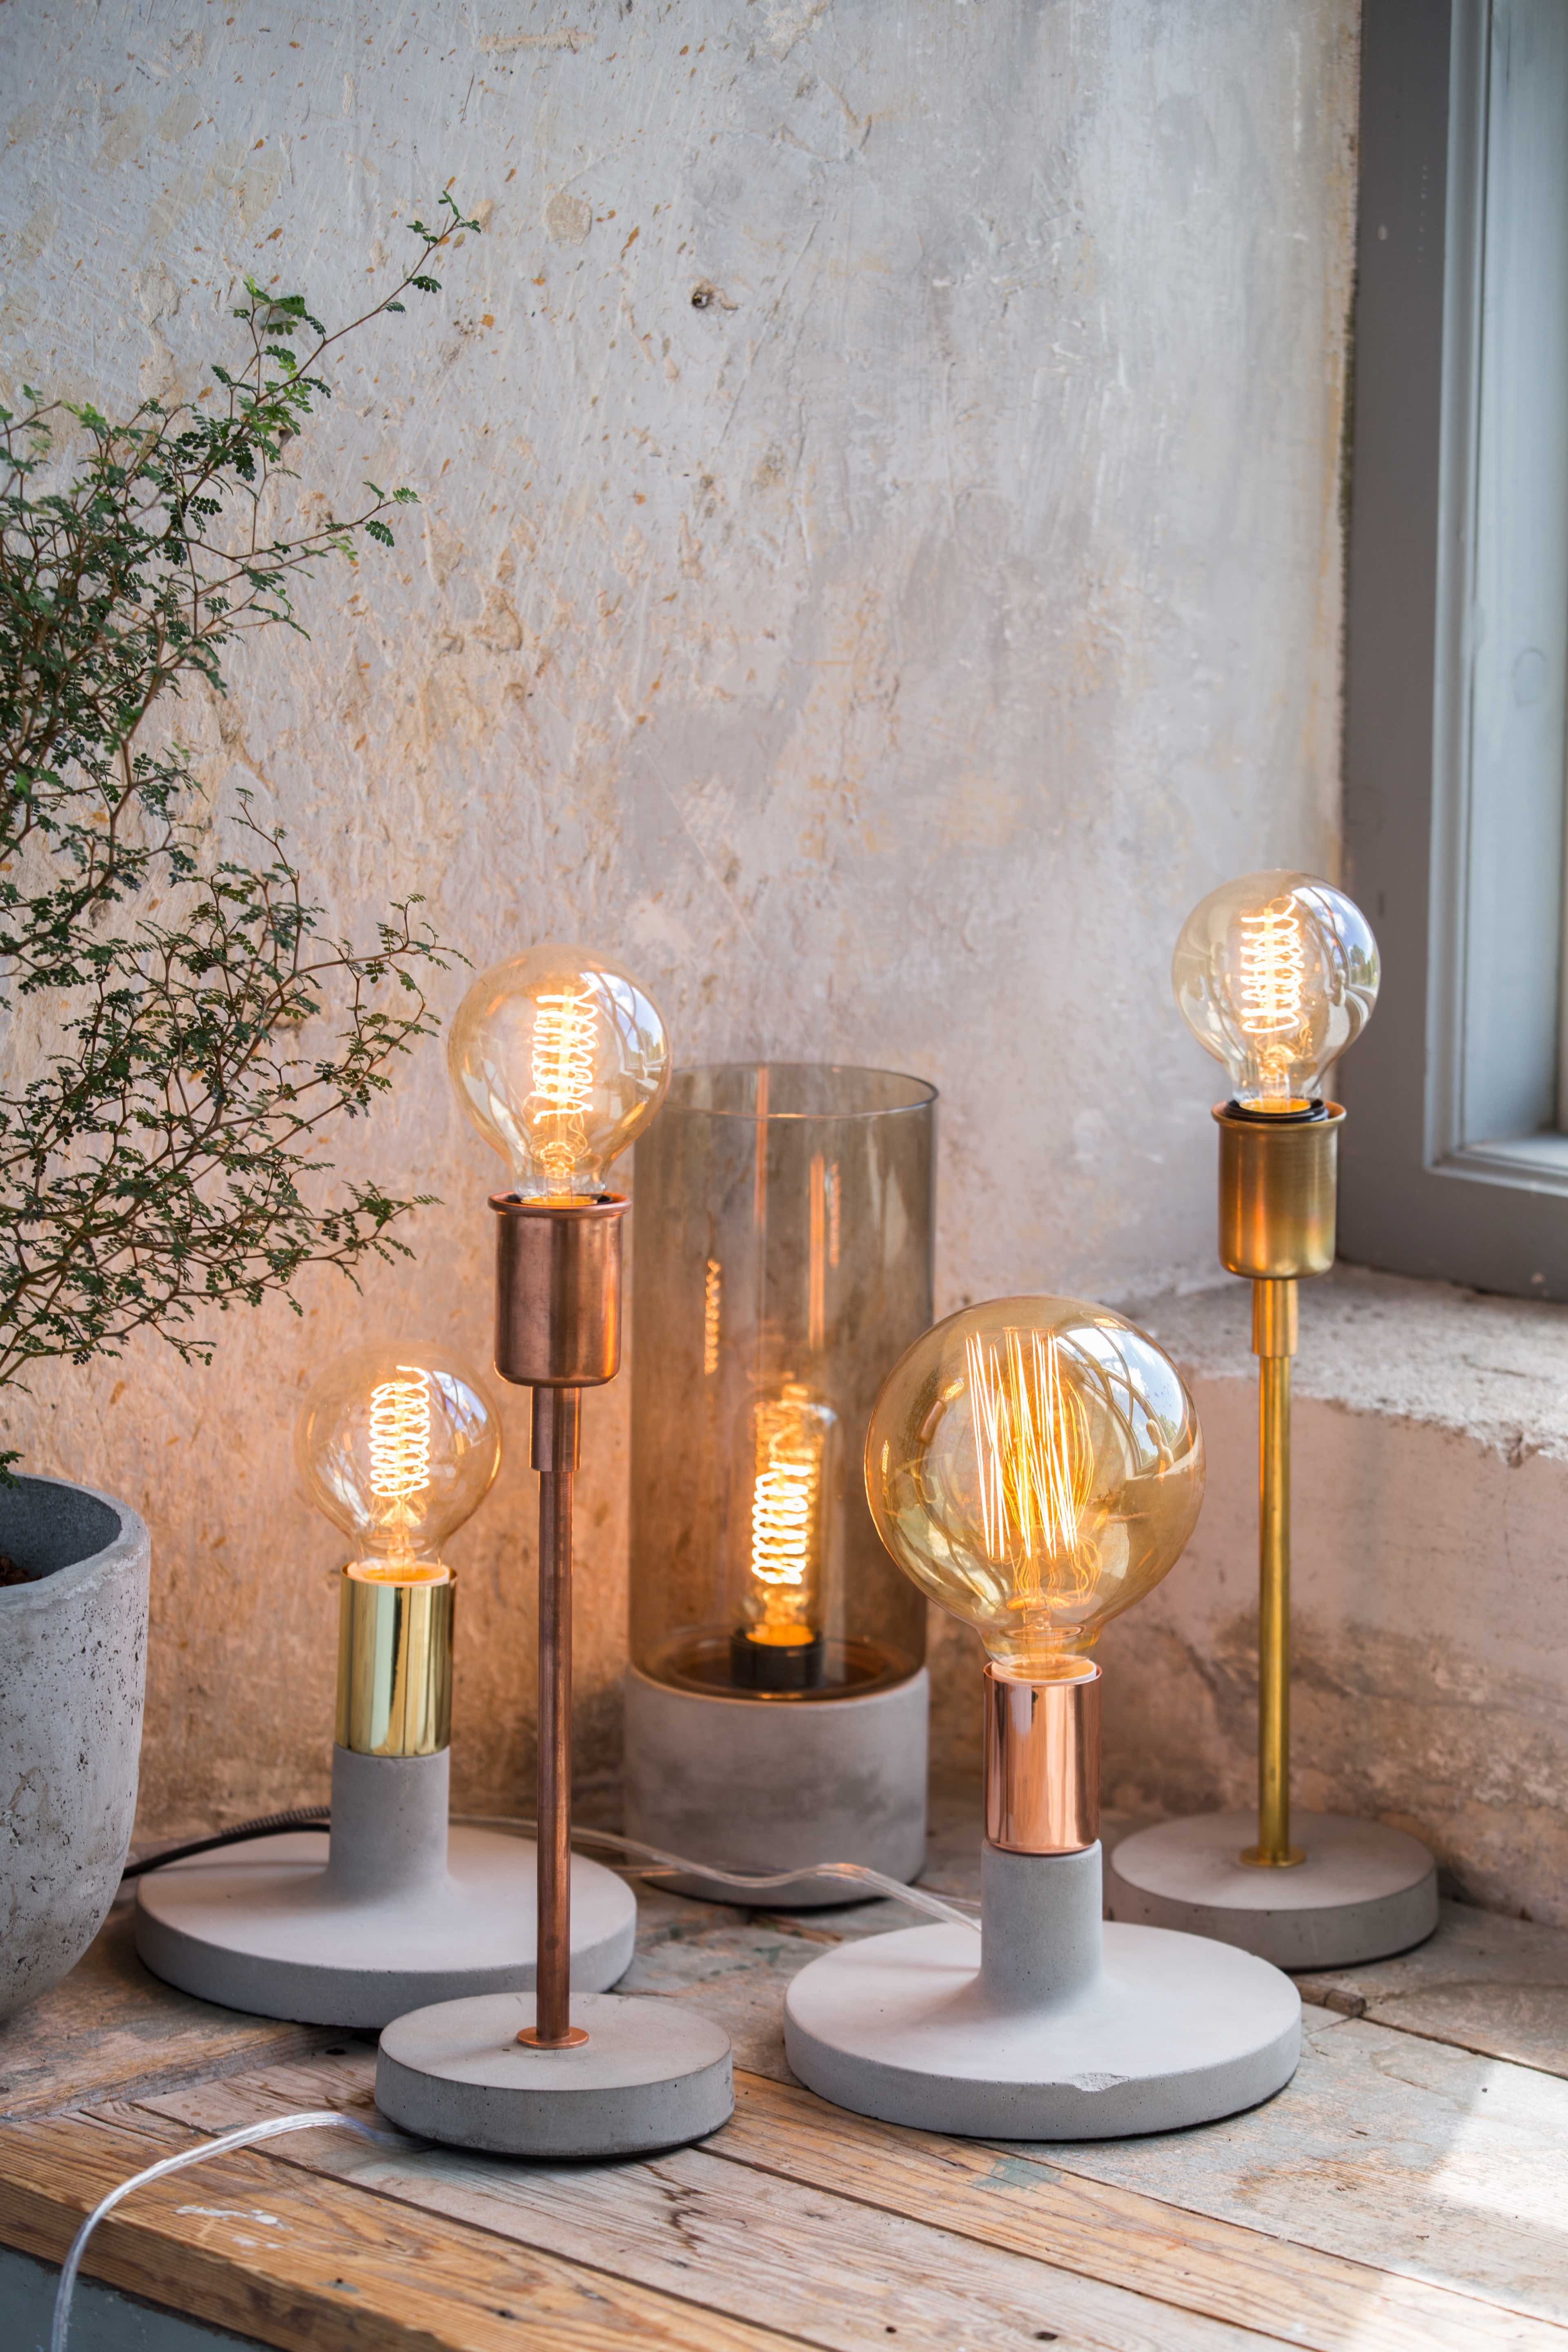 Hugo Linda and Albin Lamps by Abode Living | © Abode Living